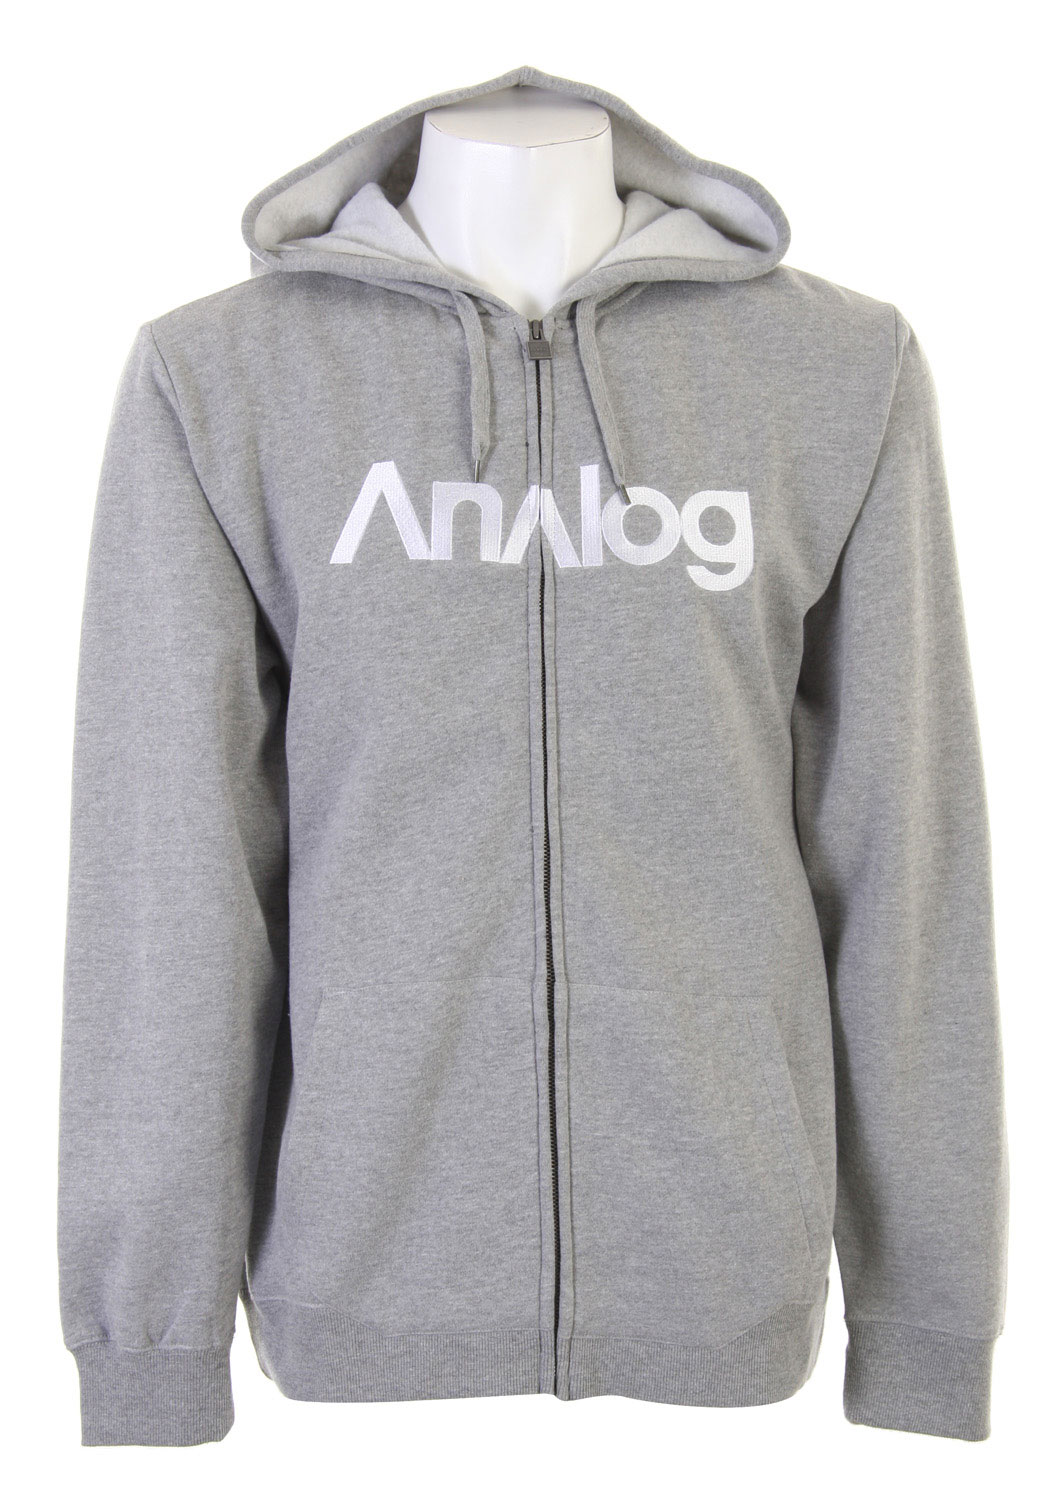 80% Cotton, 20% polyester regular fit hoodie - $32.95